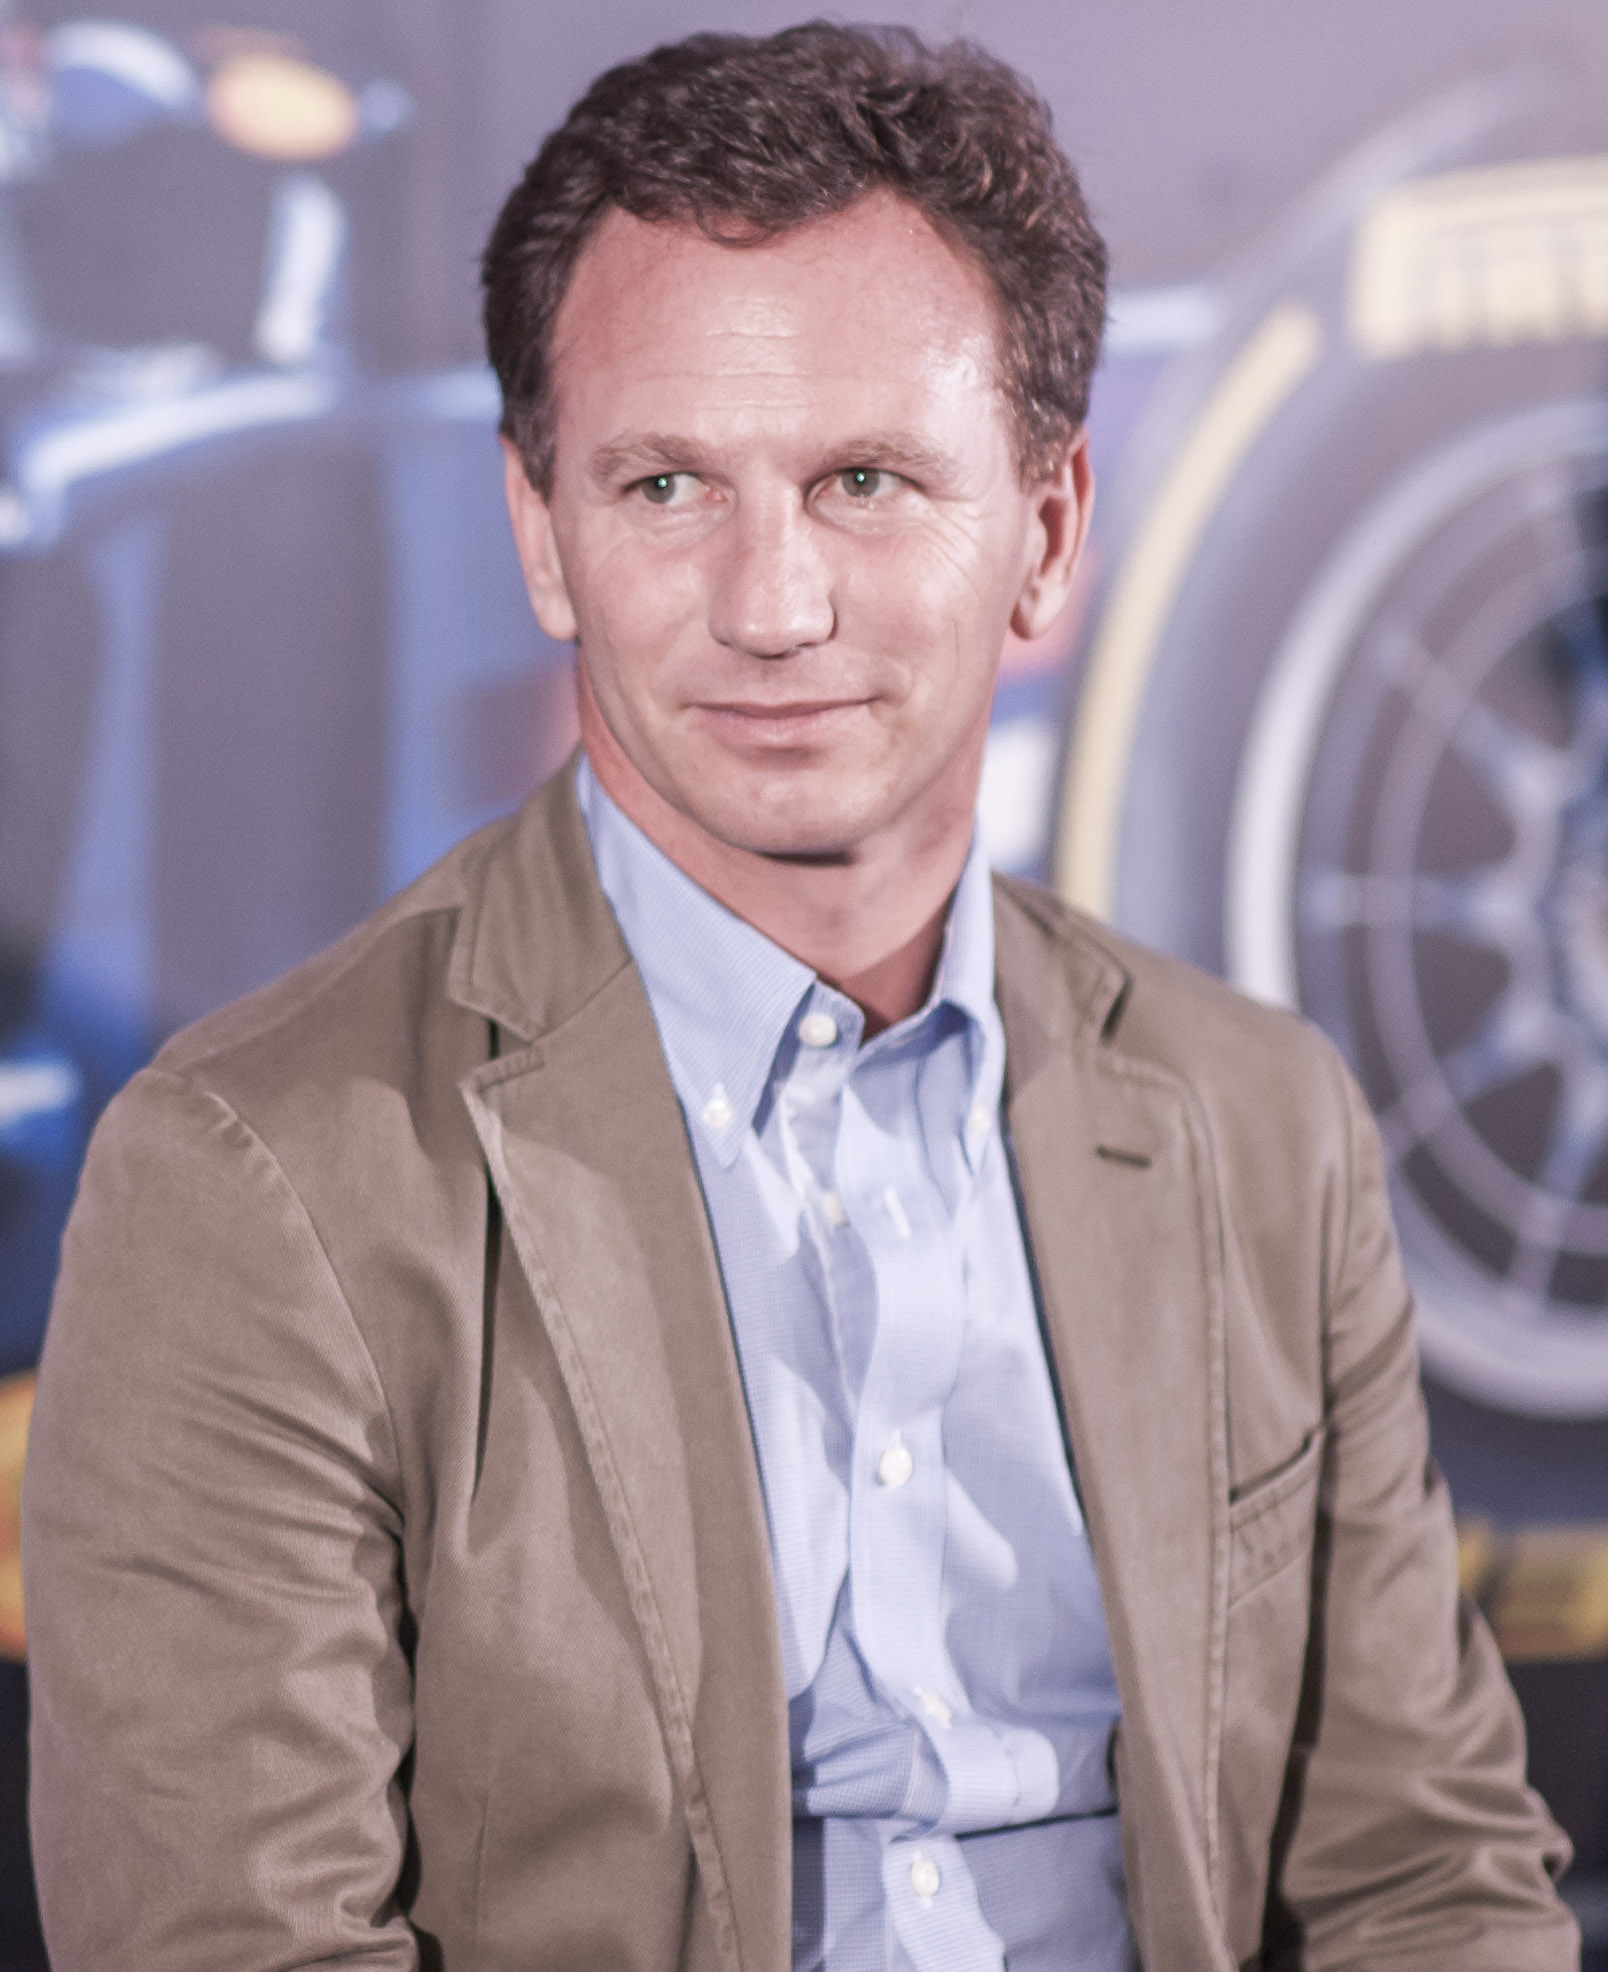 The 44-year old son of father (?) and mother(?) Christian Horner in 2018 photo. Christian Horner earned a  million dollar salary - leaving the net worth at 7.5 million in 2018